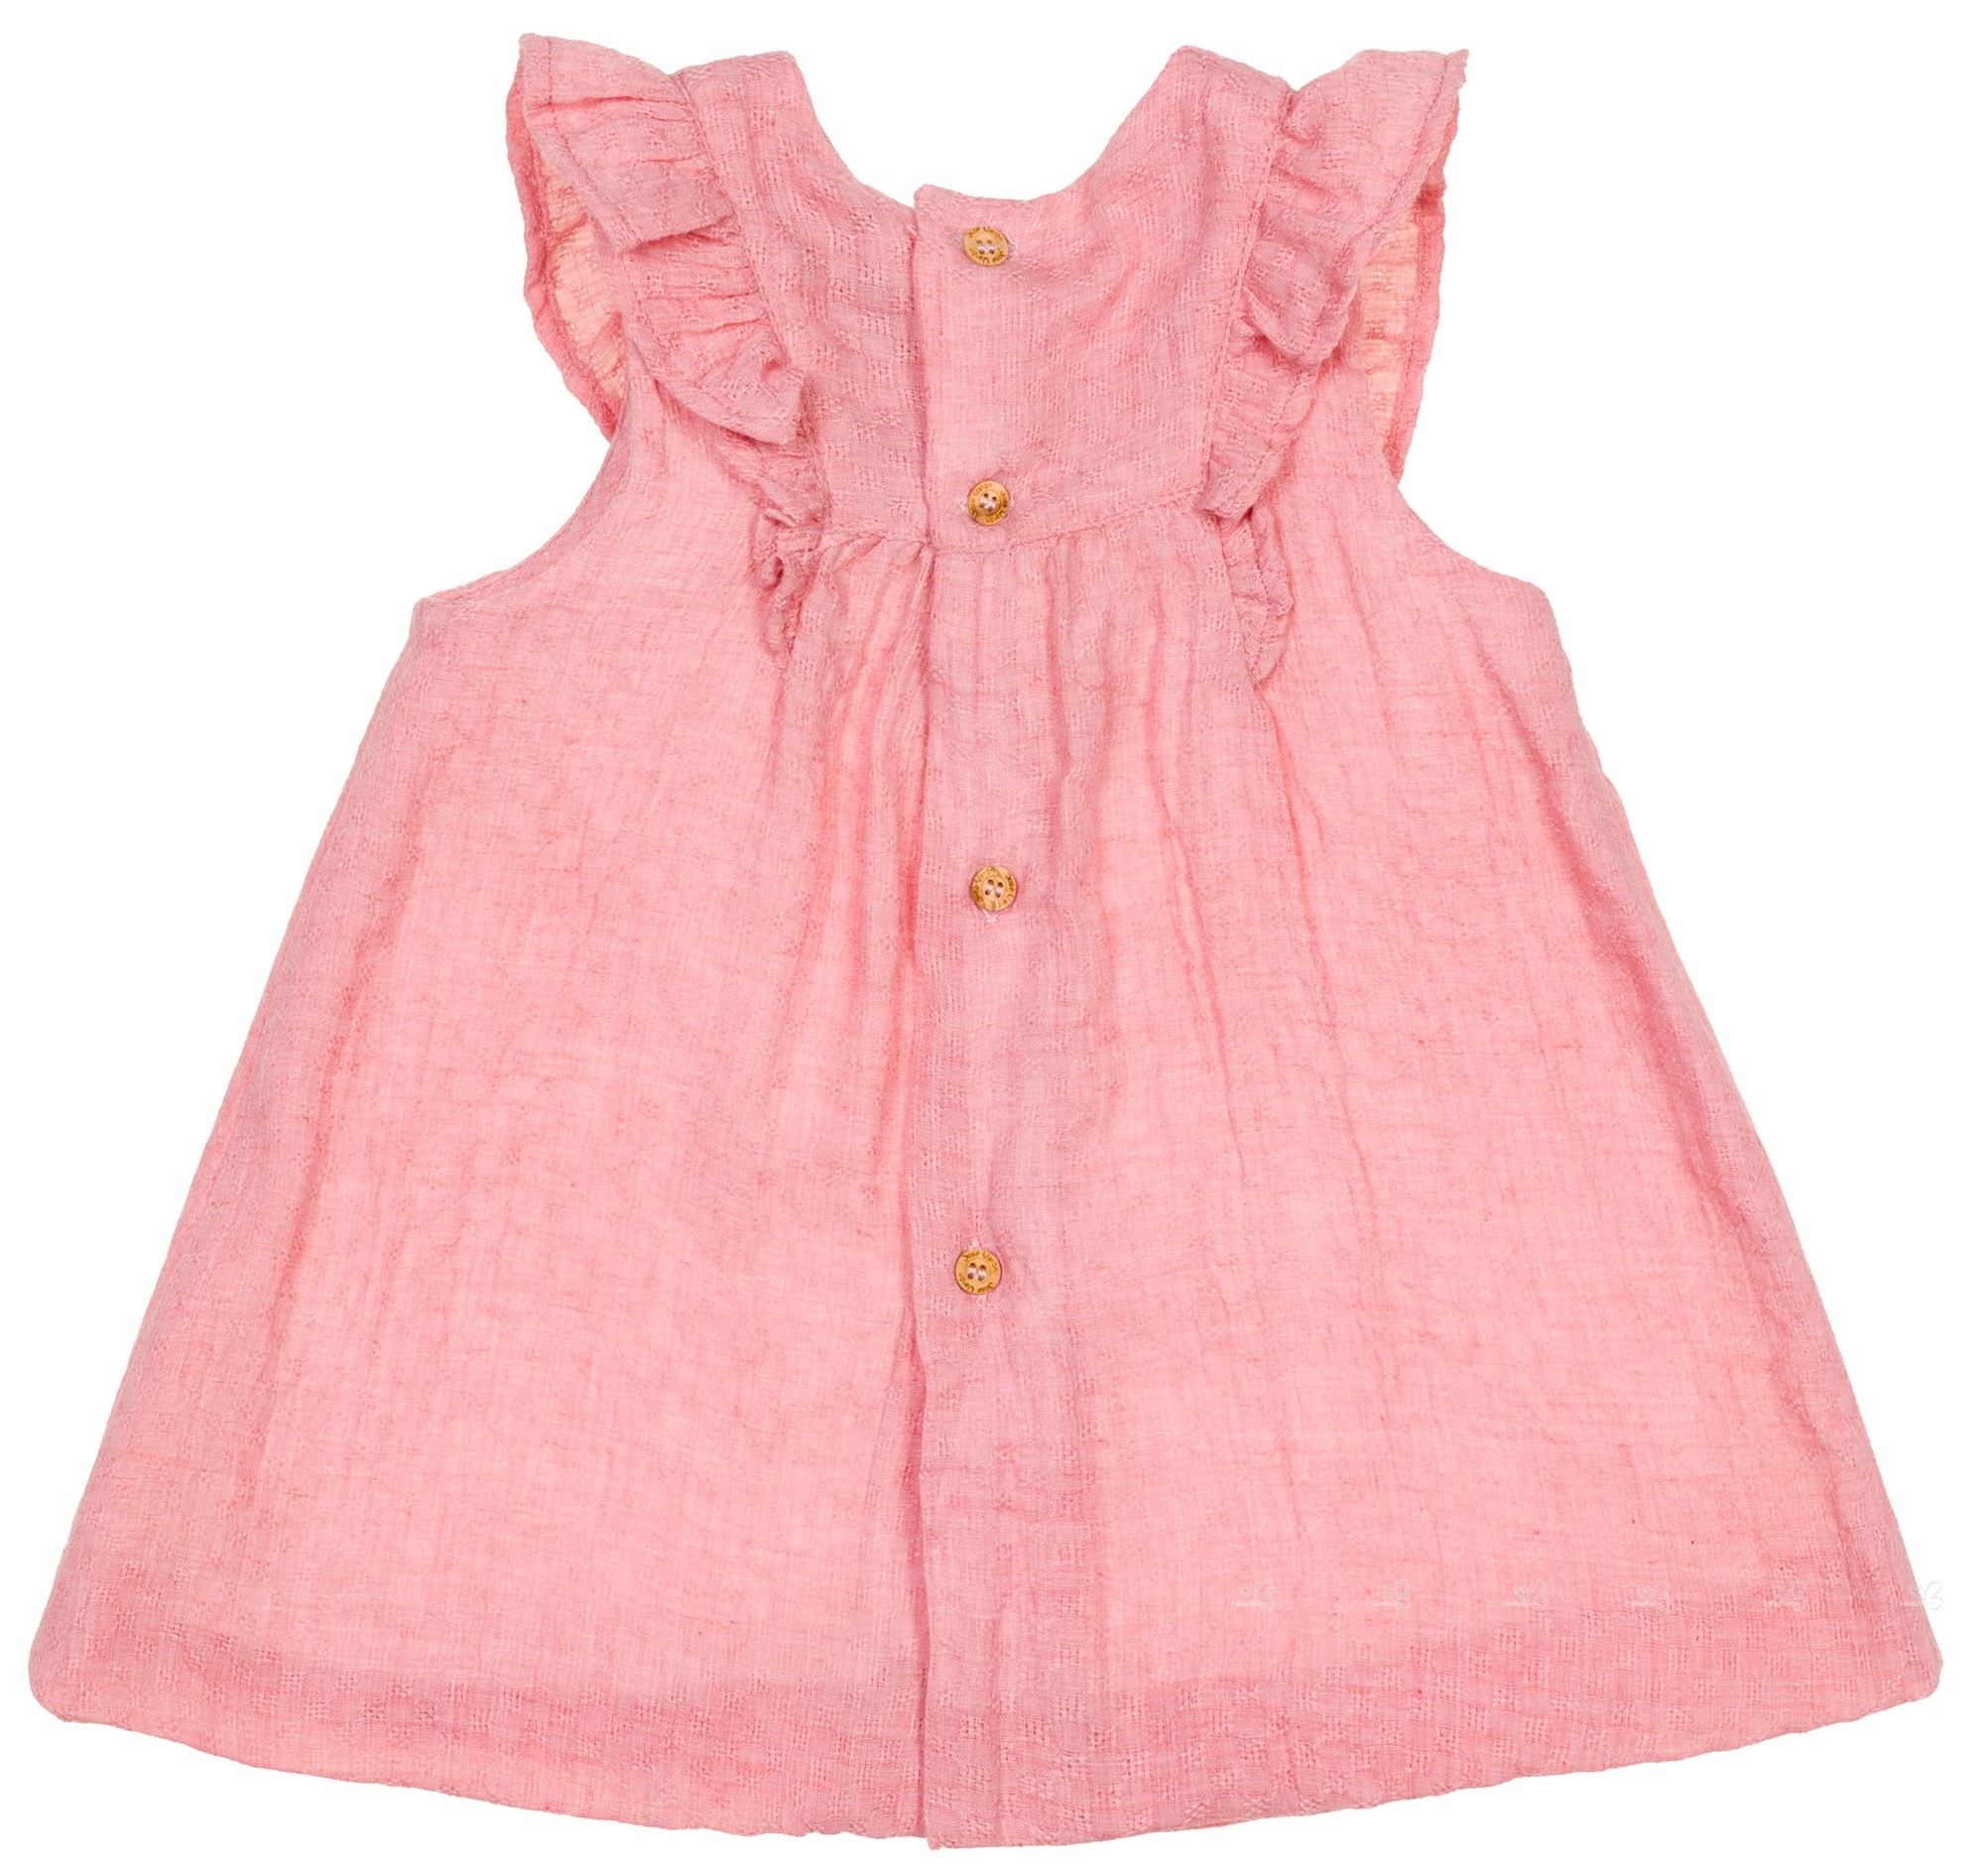 4f96f5243f38 J.V. Girls Pink Ruffle Muslin Dress